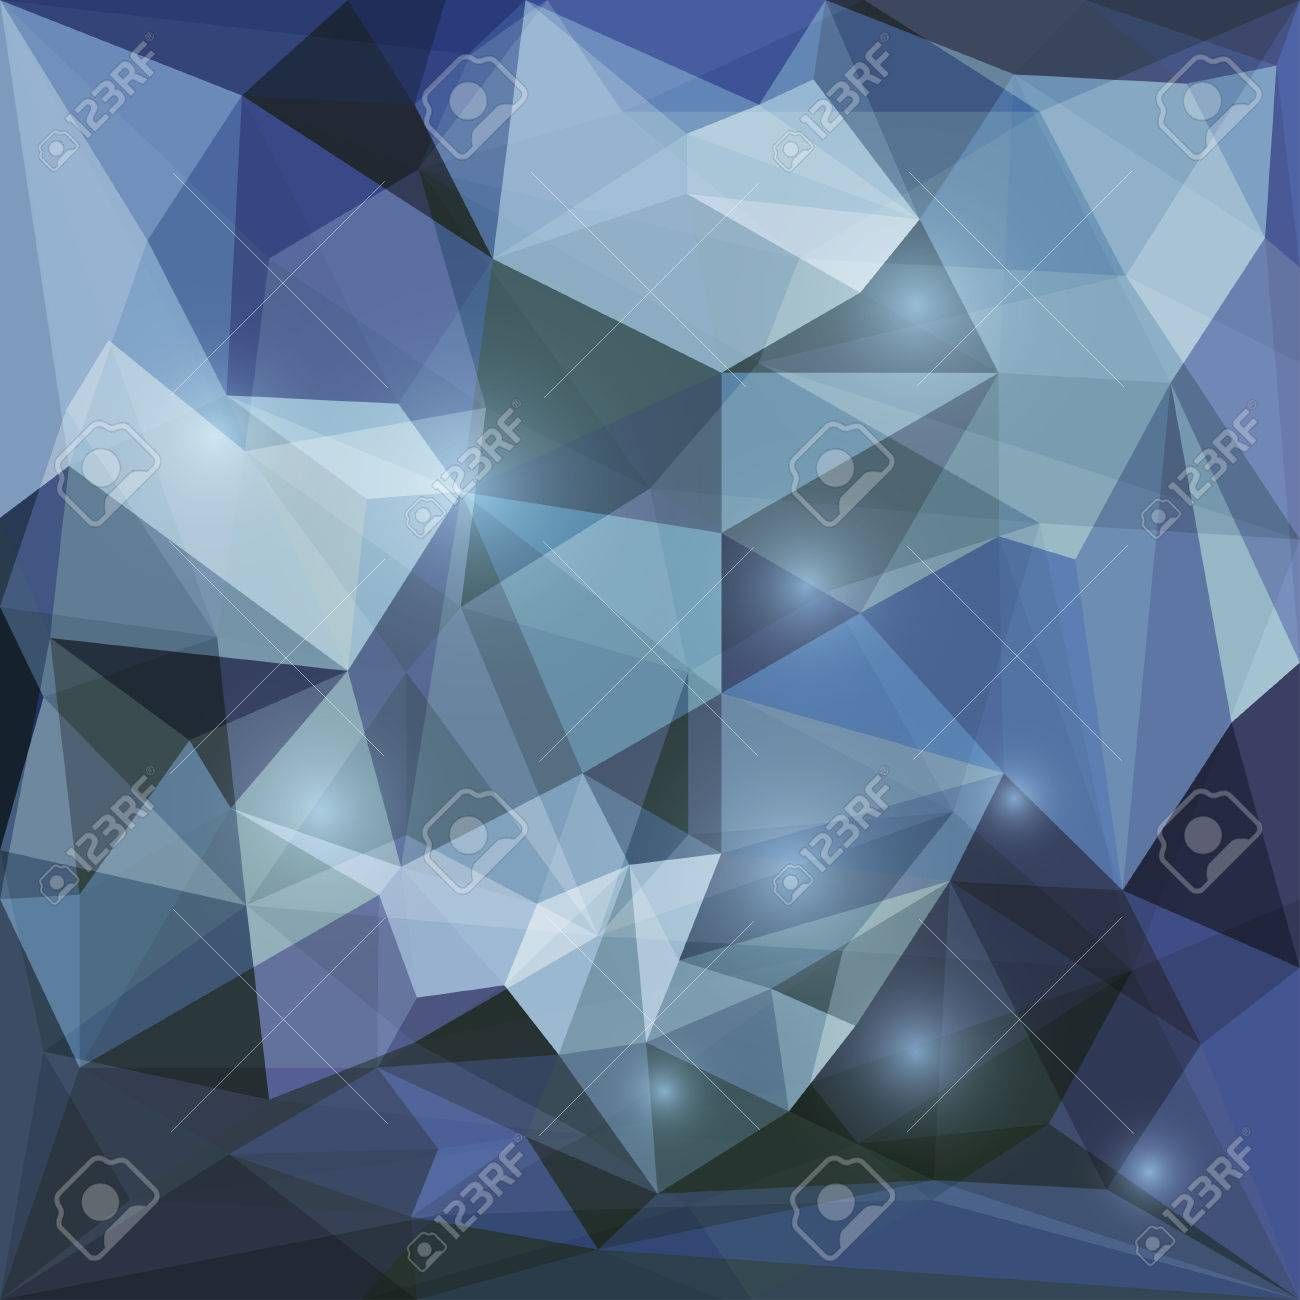 Abstract Dark Blue Polygonal Vector Triangular Geometric Background With Glaring Lights For Use In Design